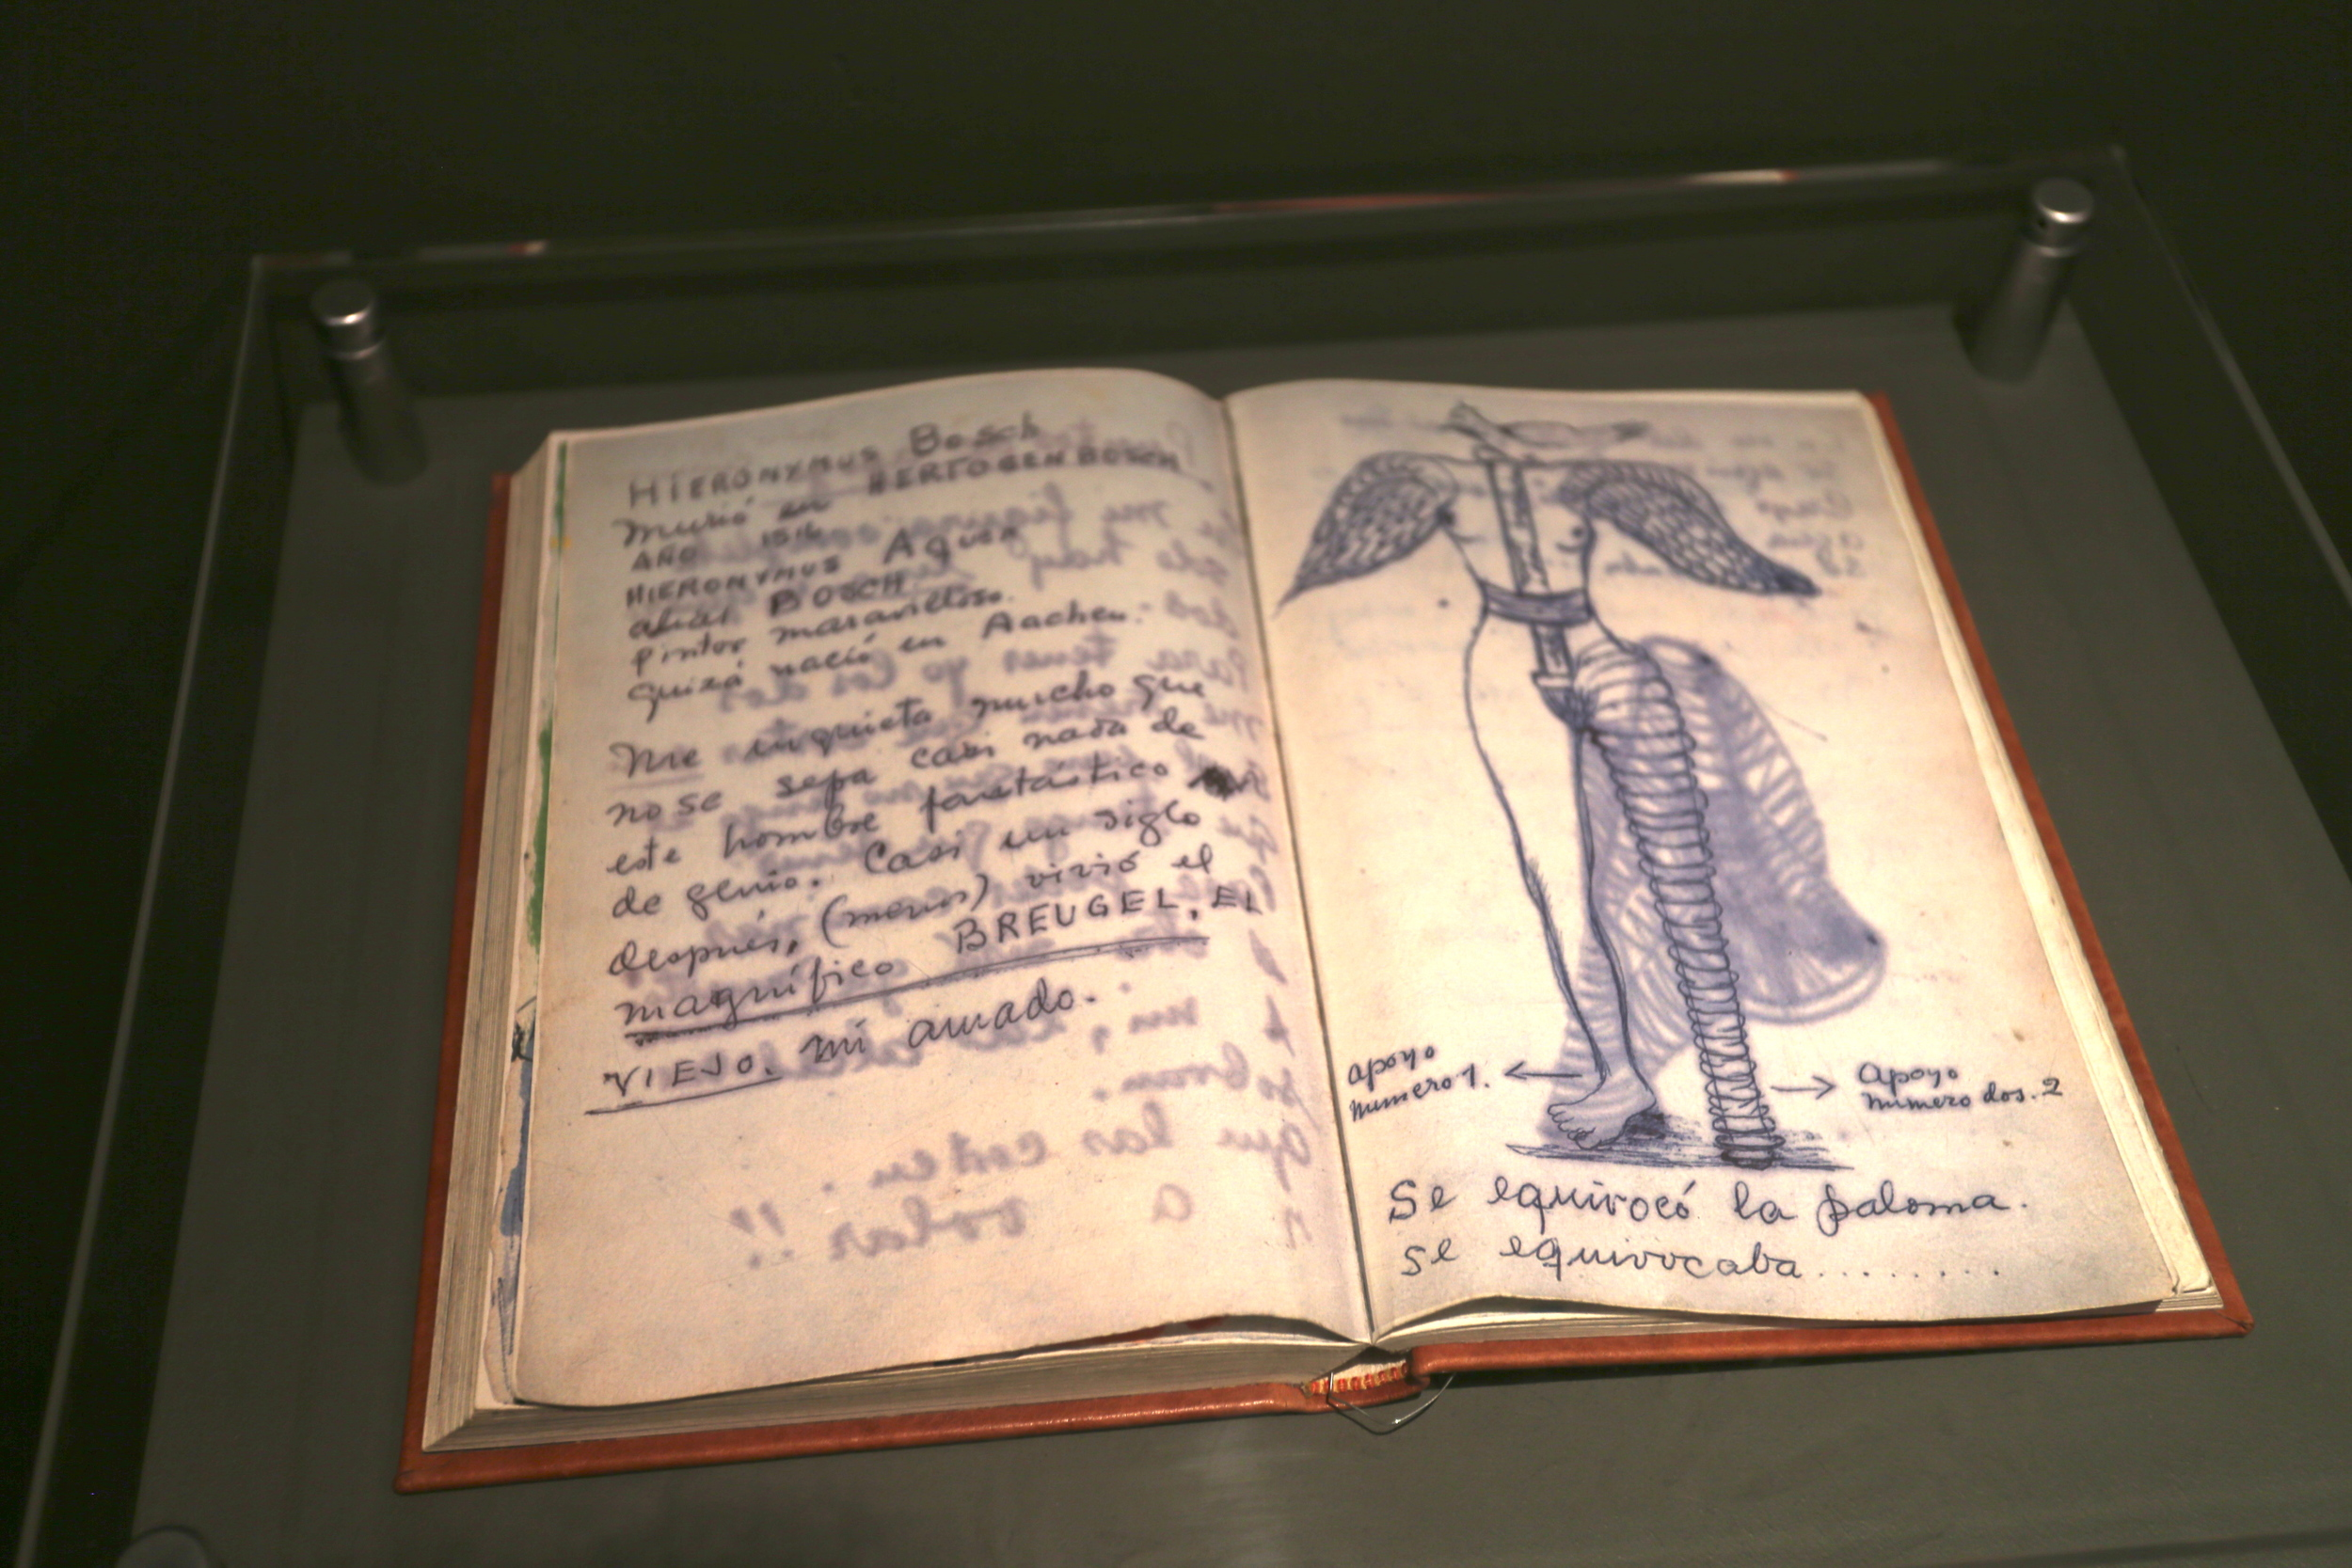 Frida's journal.